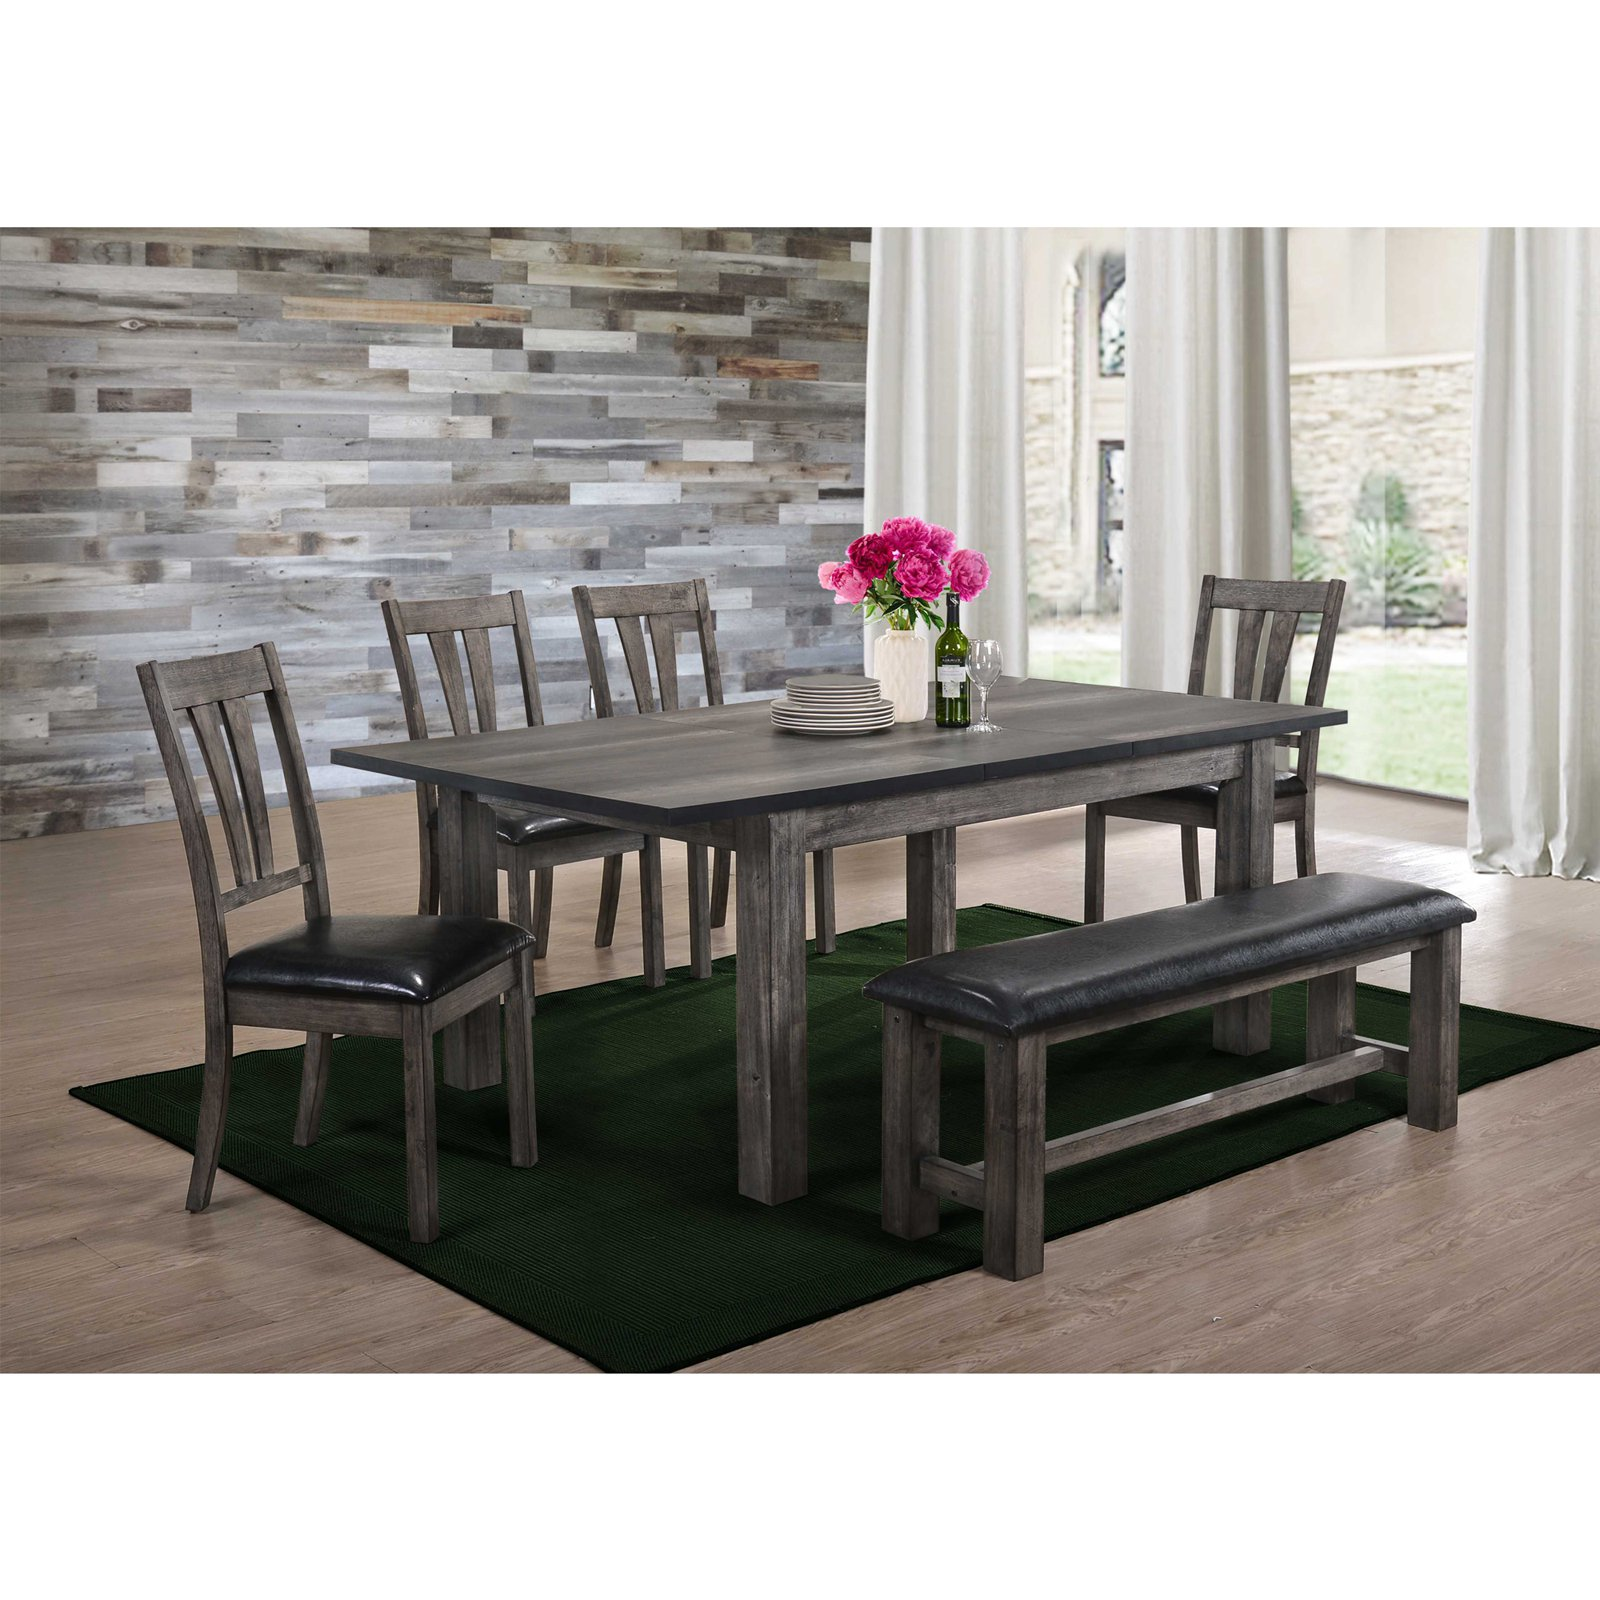 Picket House Furnishings Grayson 6 Piece Extension Dining Table Set with Upholstered Bench